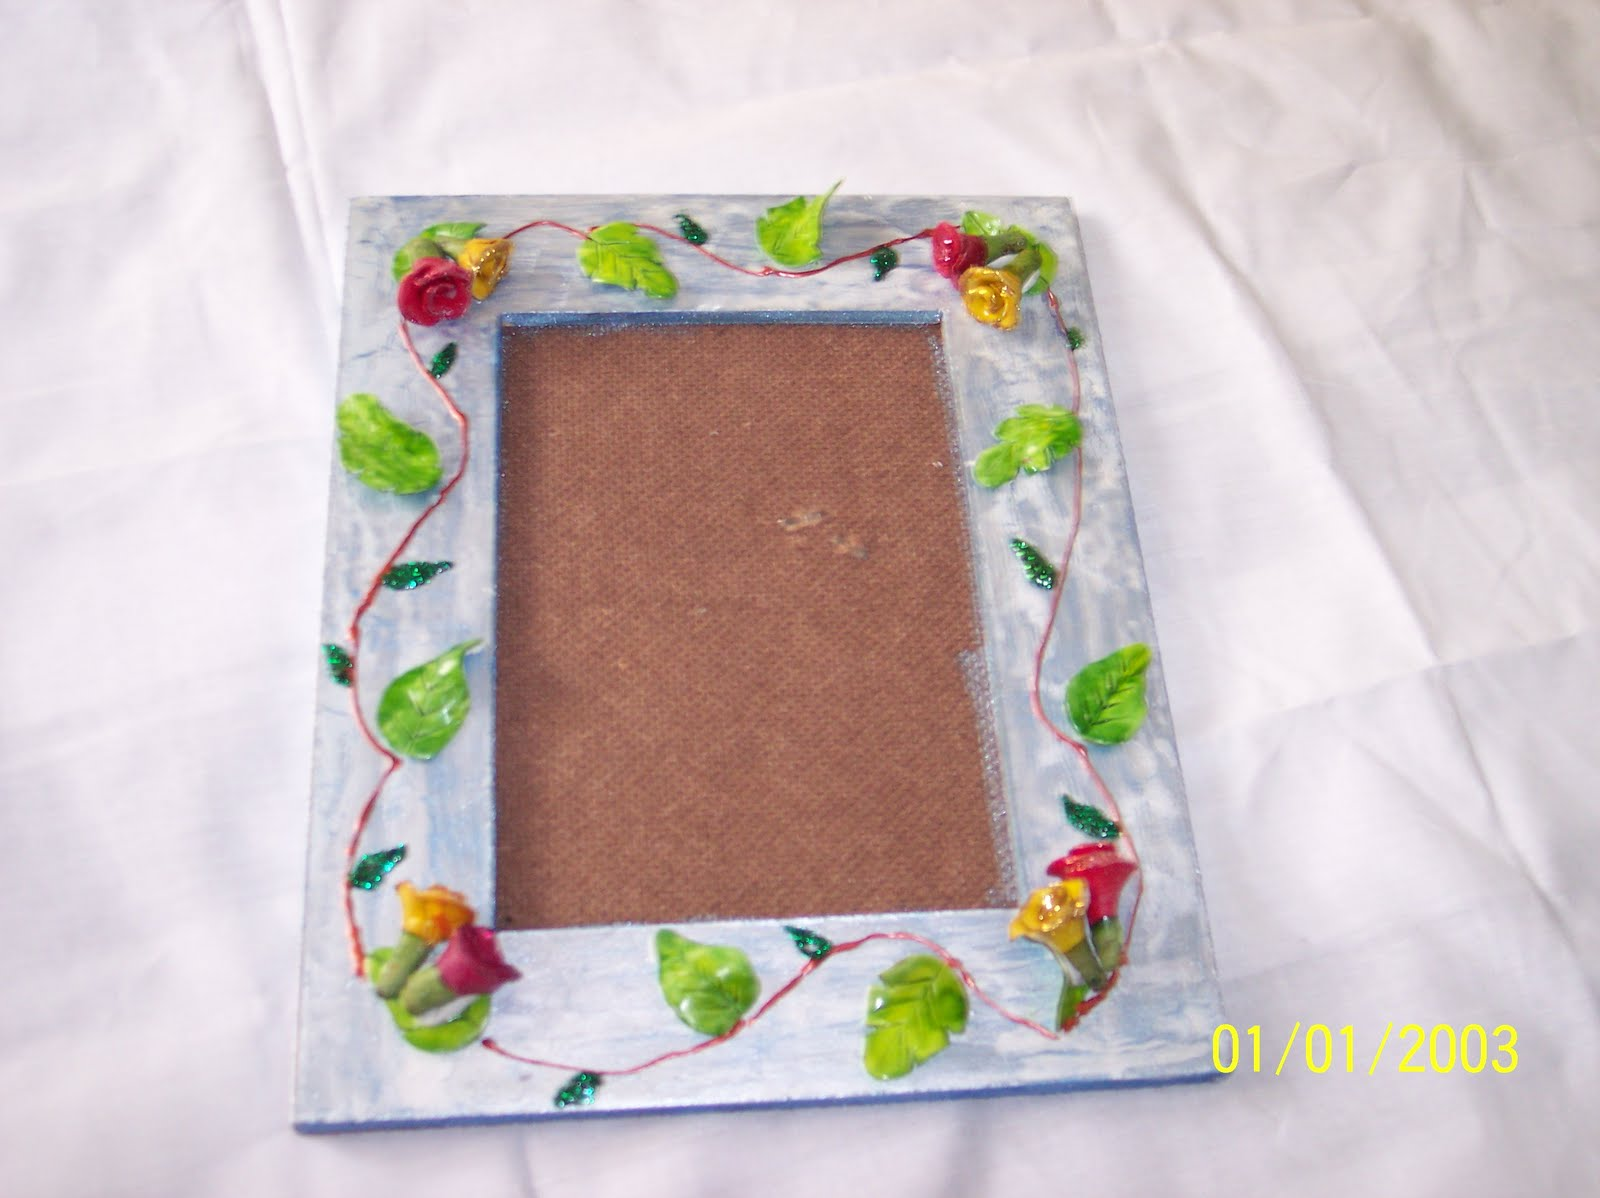 M Seal Craft http://rashi-arts.blogspot.com/2009/11/m-seal-work-on-photot-frame.html